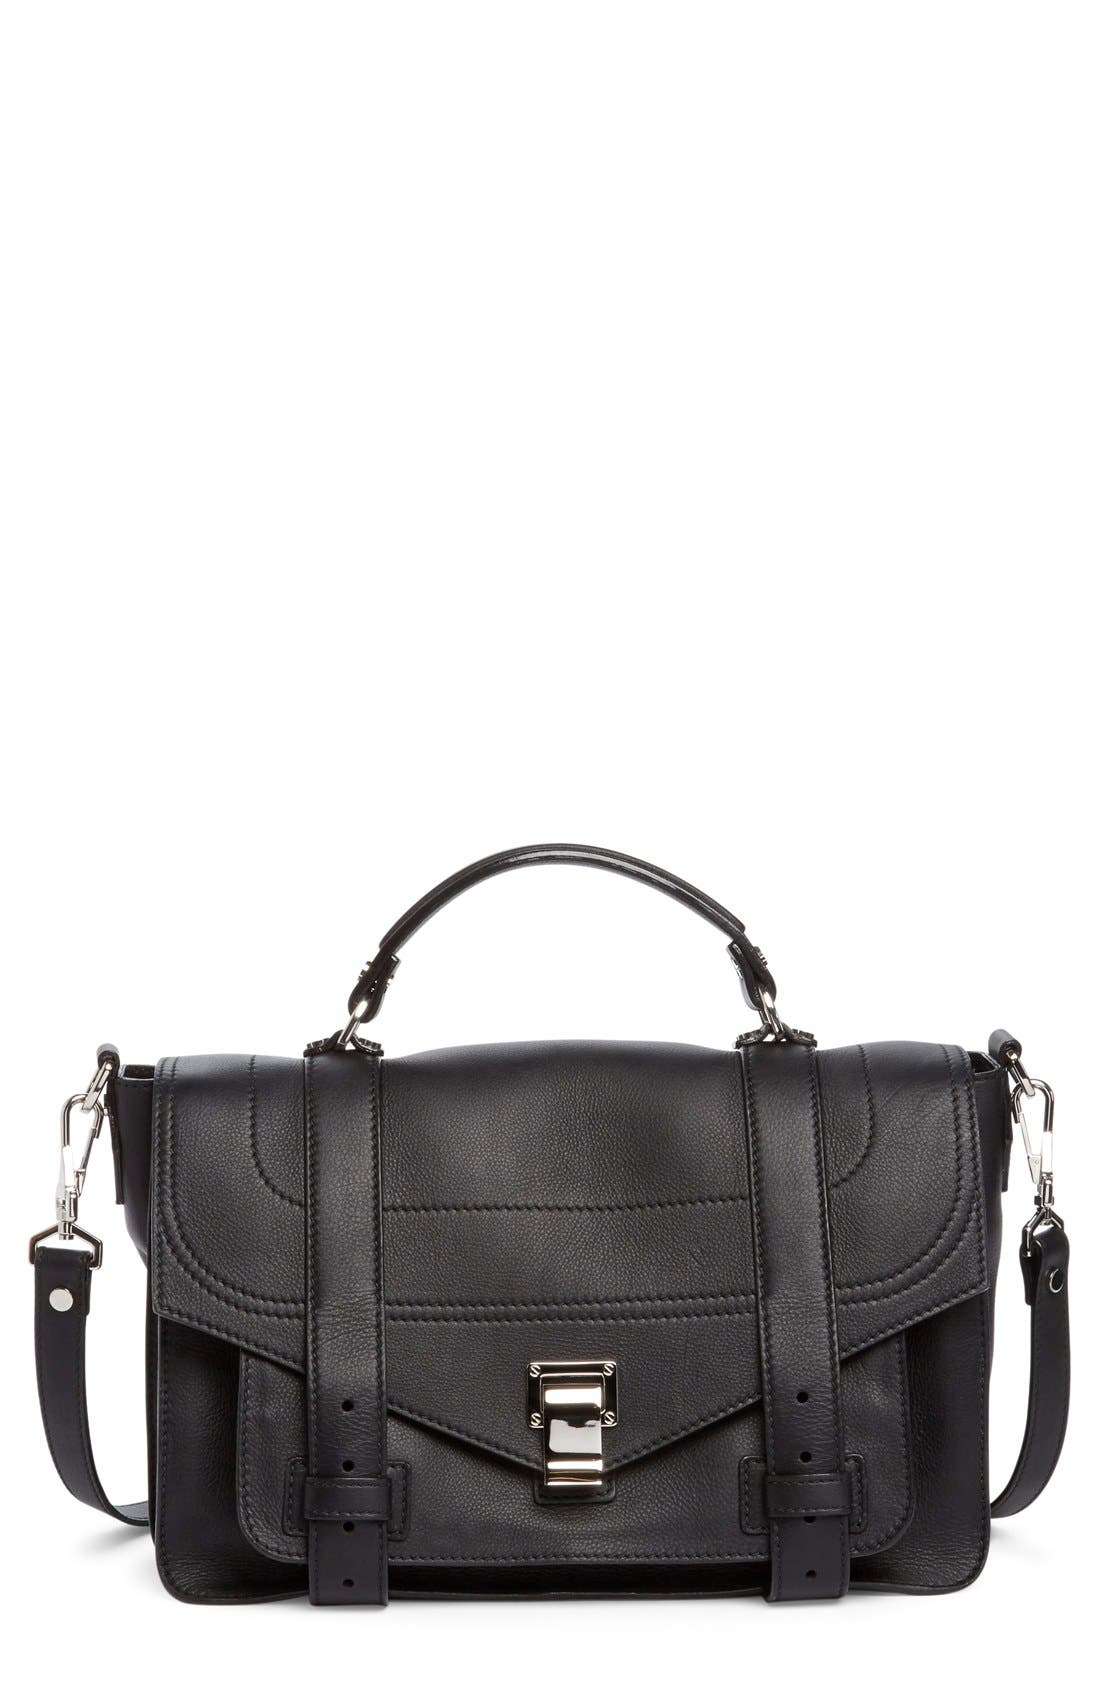 Medium PS1+ Grainy Leather Satchel,                         Main,                         color, Black